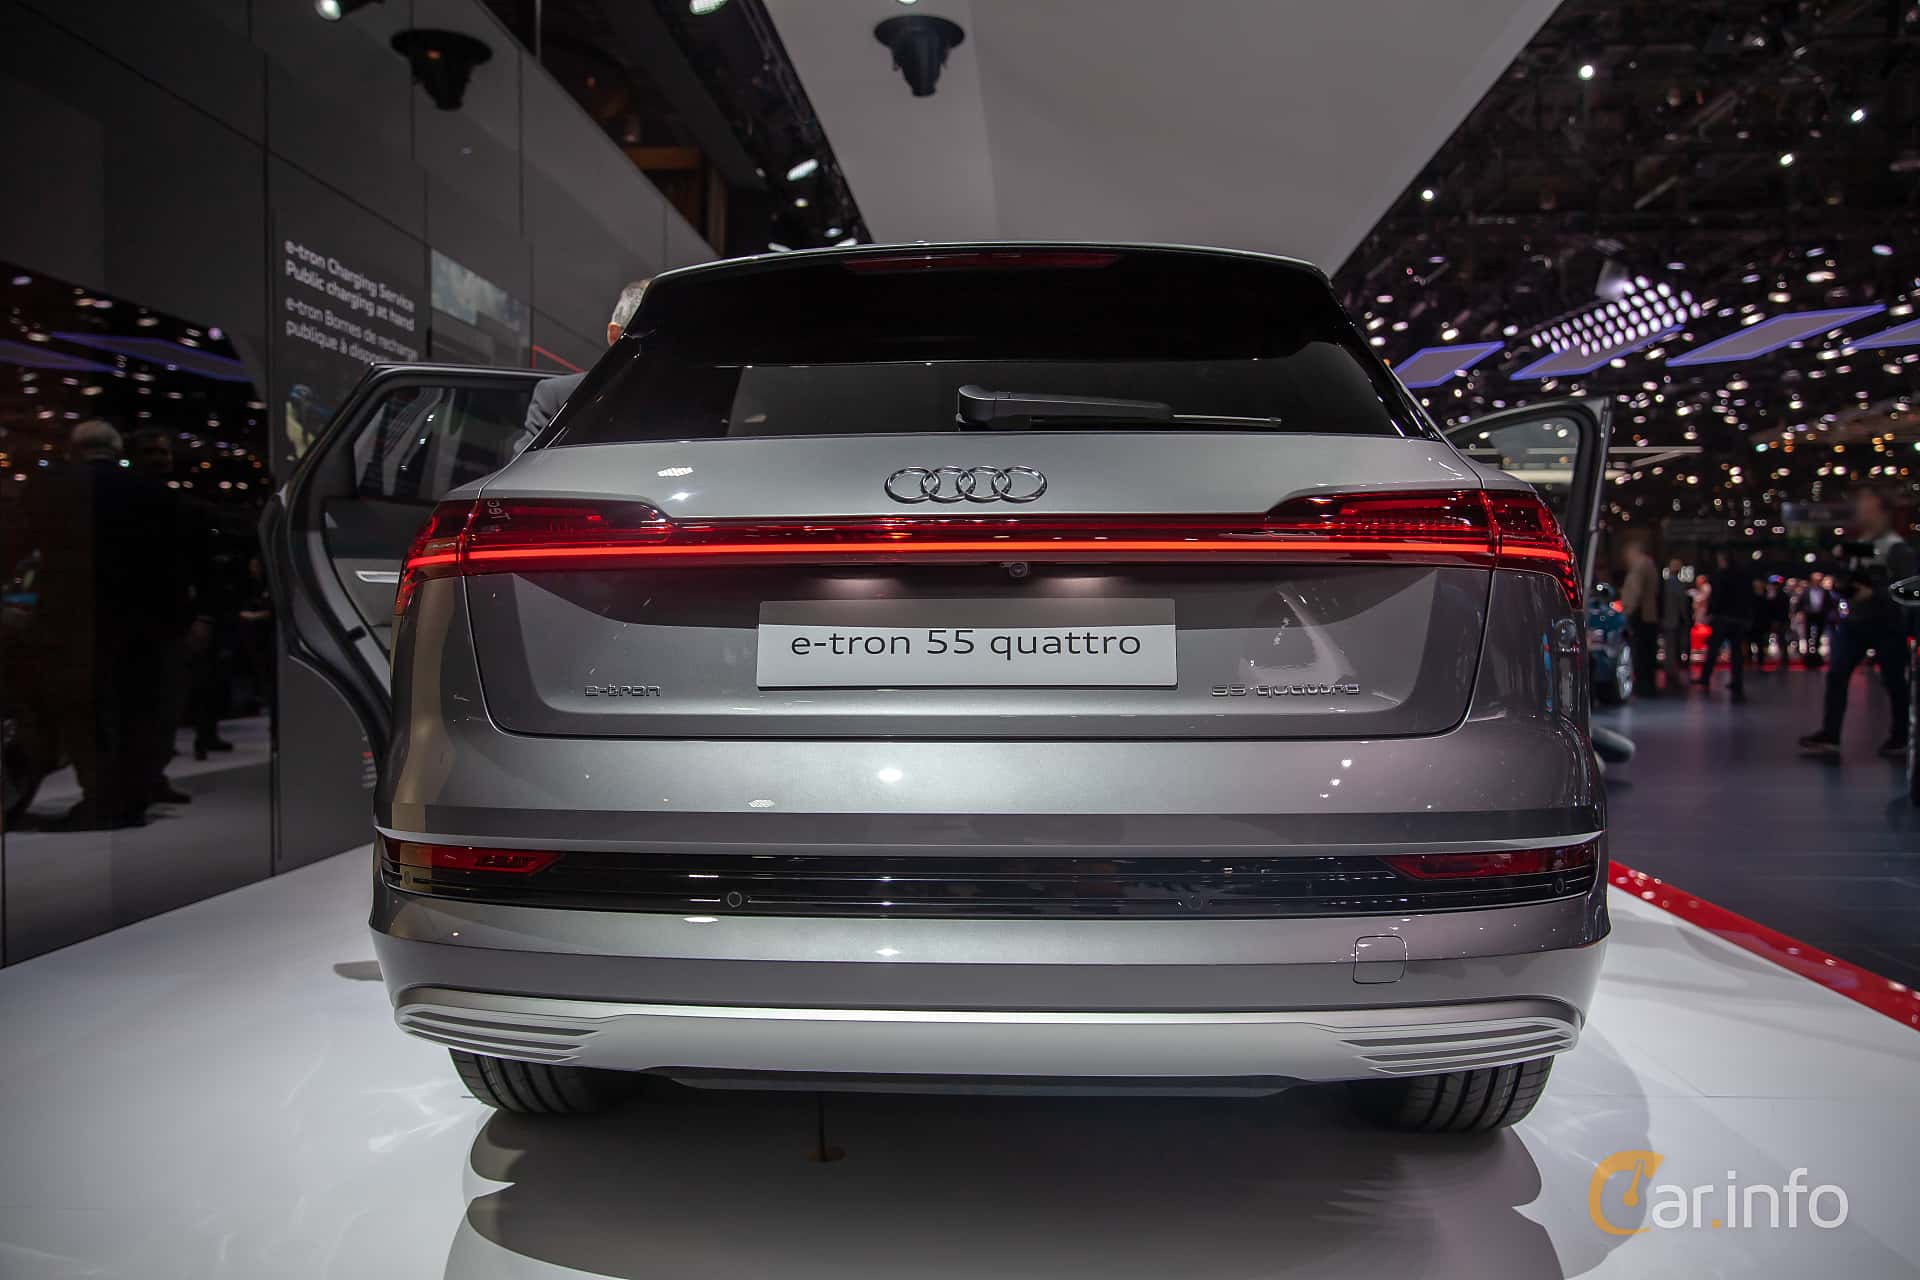 Back of Audi e-tron 55 quattro  Single Speed, 408ps, 2019 at Geneva Motor Show 2019